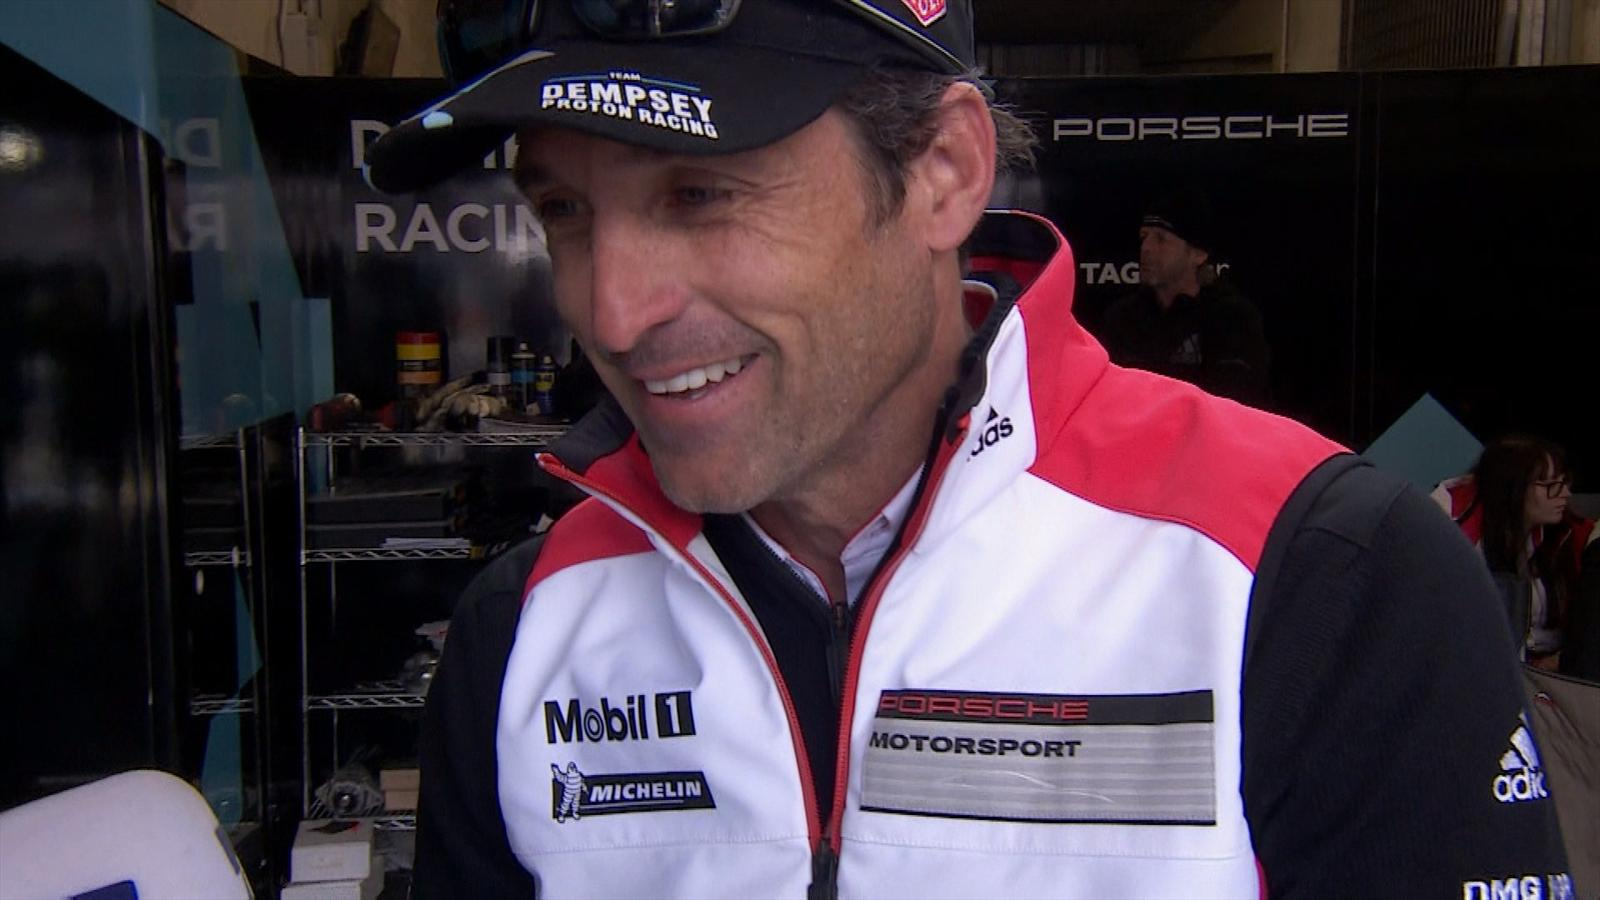 Le Mans Hollywood Star Patrick Dempsey Im Interview